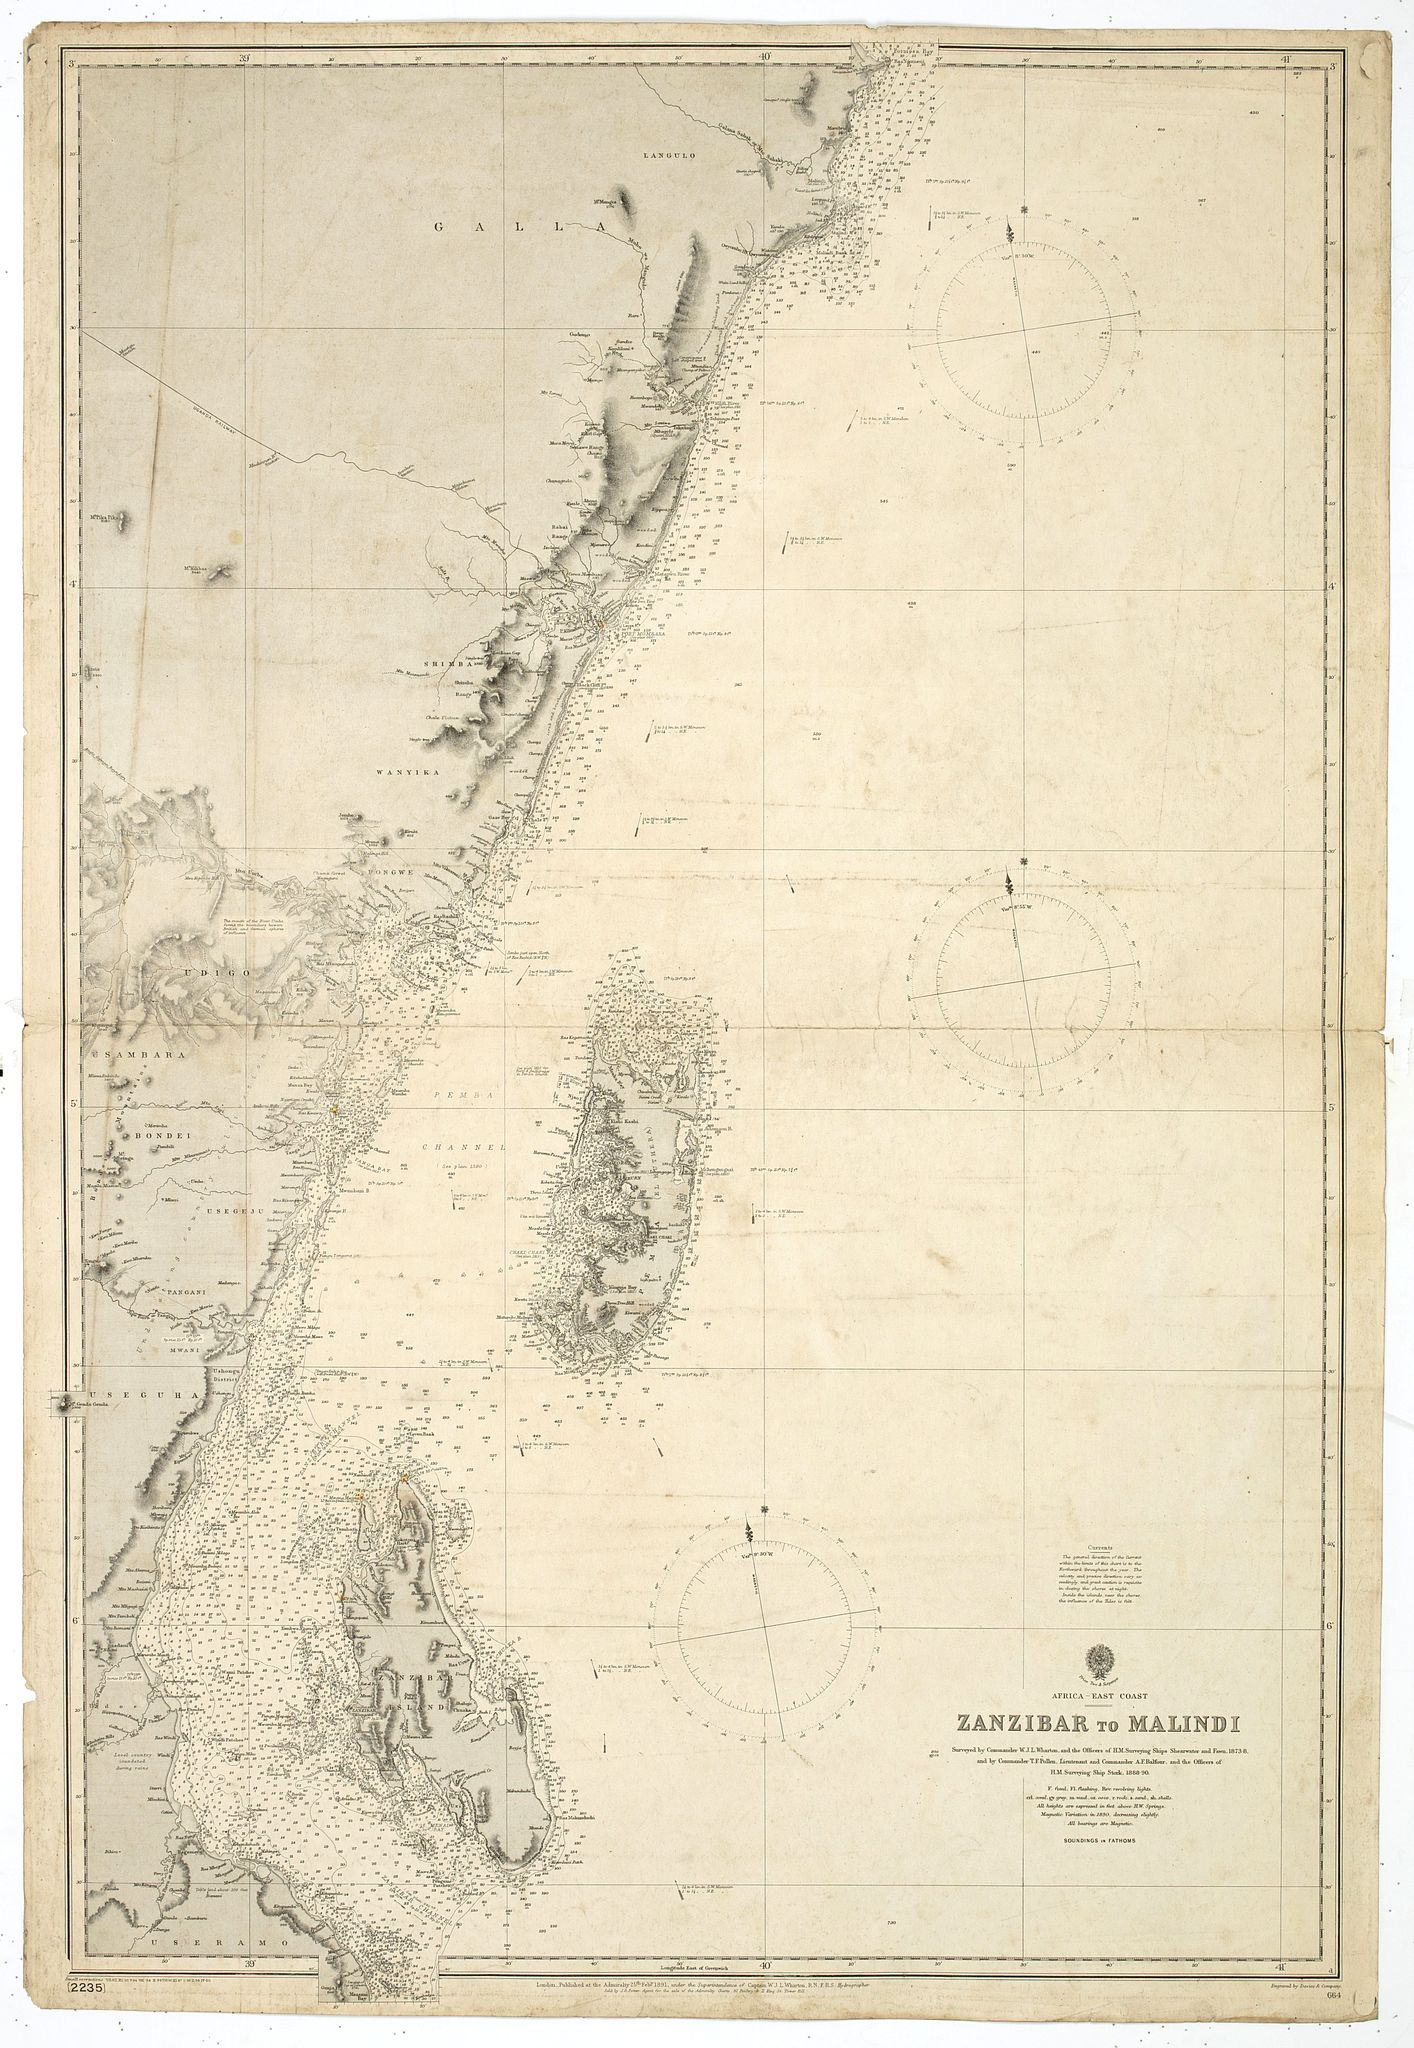 BRITISH ADMIRALTY CHART. -  Africa east coast Zanzibar to Malindi … H. M. Surveying ship Stork, 1888-90.  Magnetic variation in 1890, decreasing slightly. Africa - SW coast Table Bay surveyed by Mr F Skead Master RN assisted by Mr Charles Watermeyer 1858-60